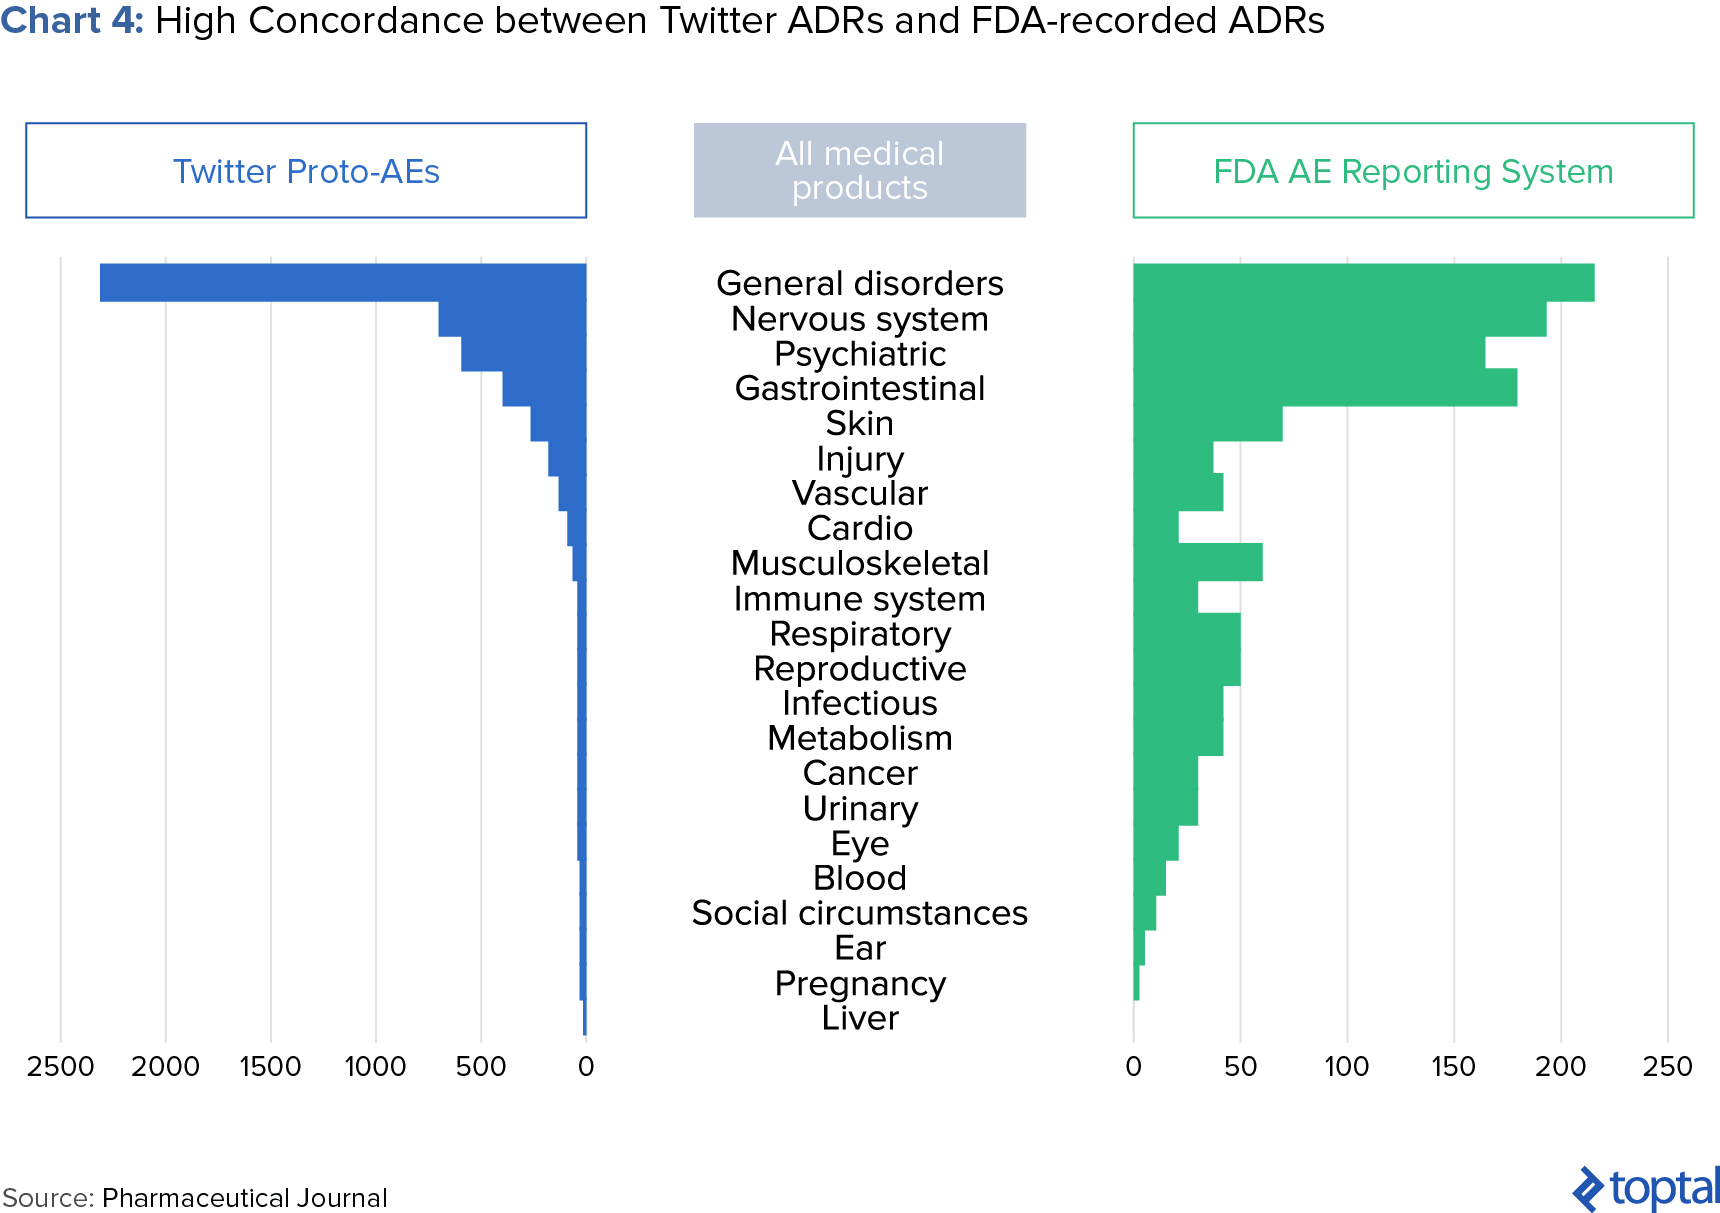 Chart 4: High Concordance Between Twitter ADRs and FDA-recorded ADRs